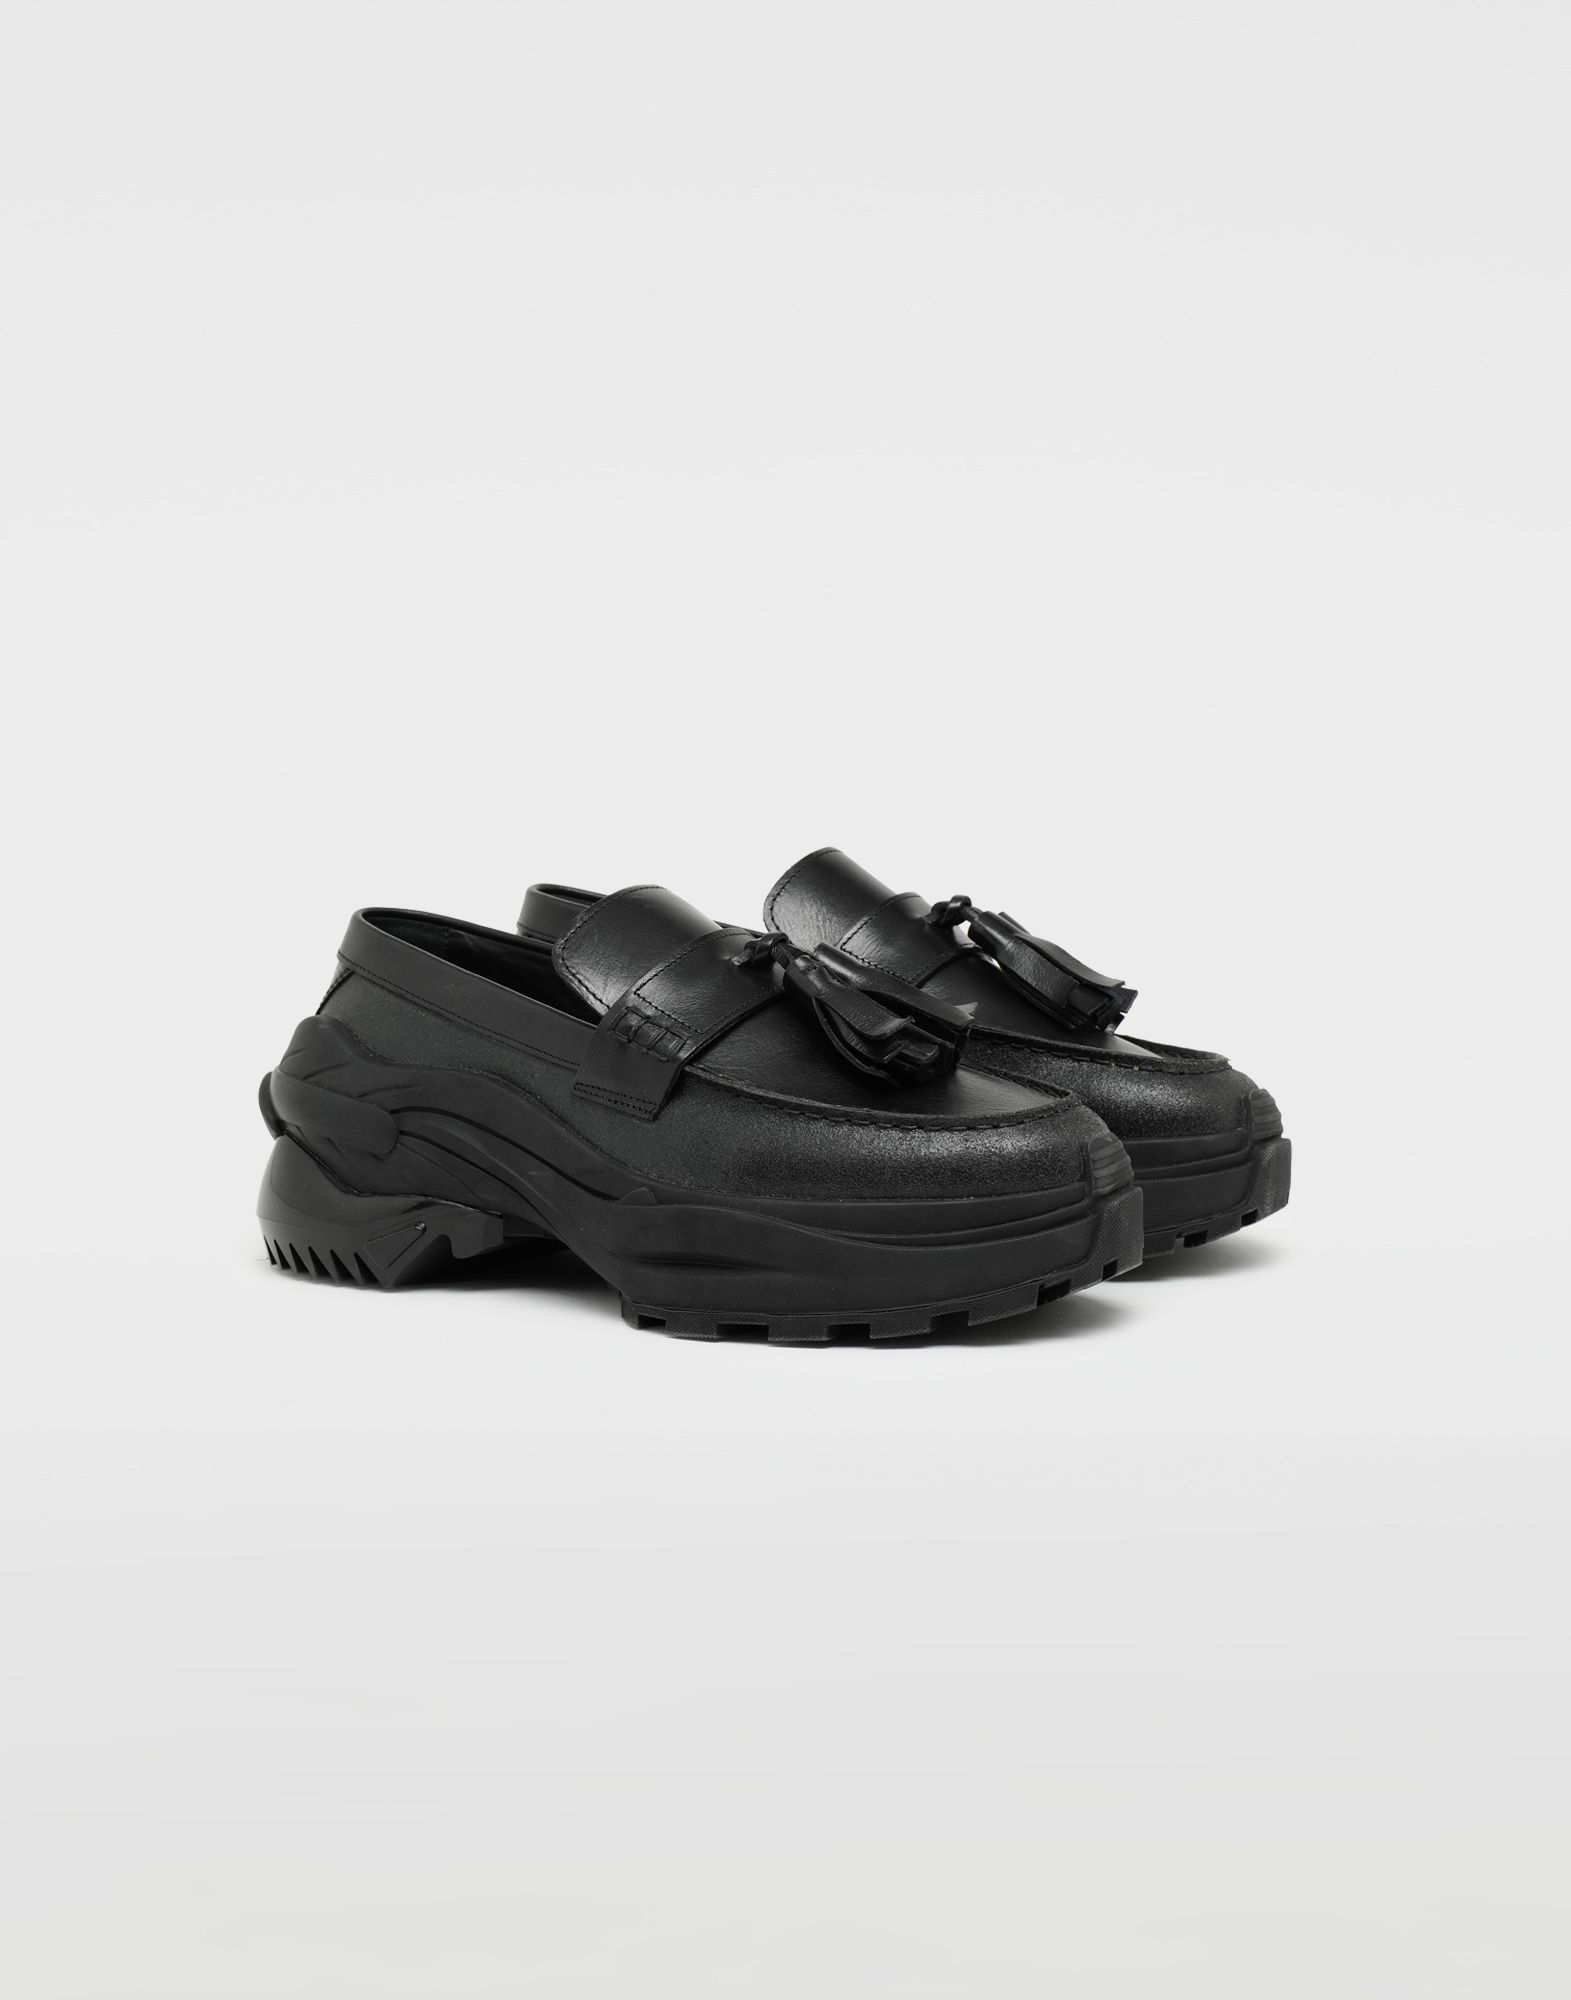 MAISON MARGIELA Sneakers-mocassins à gland Spliced Mocassins Homme r